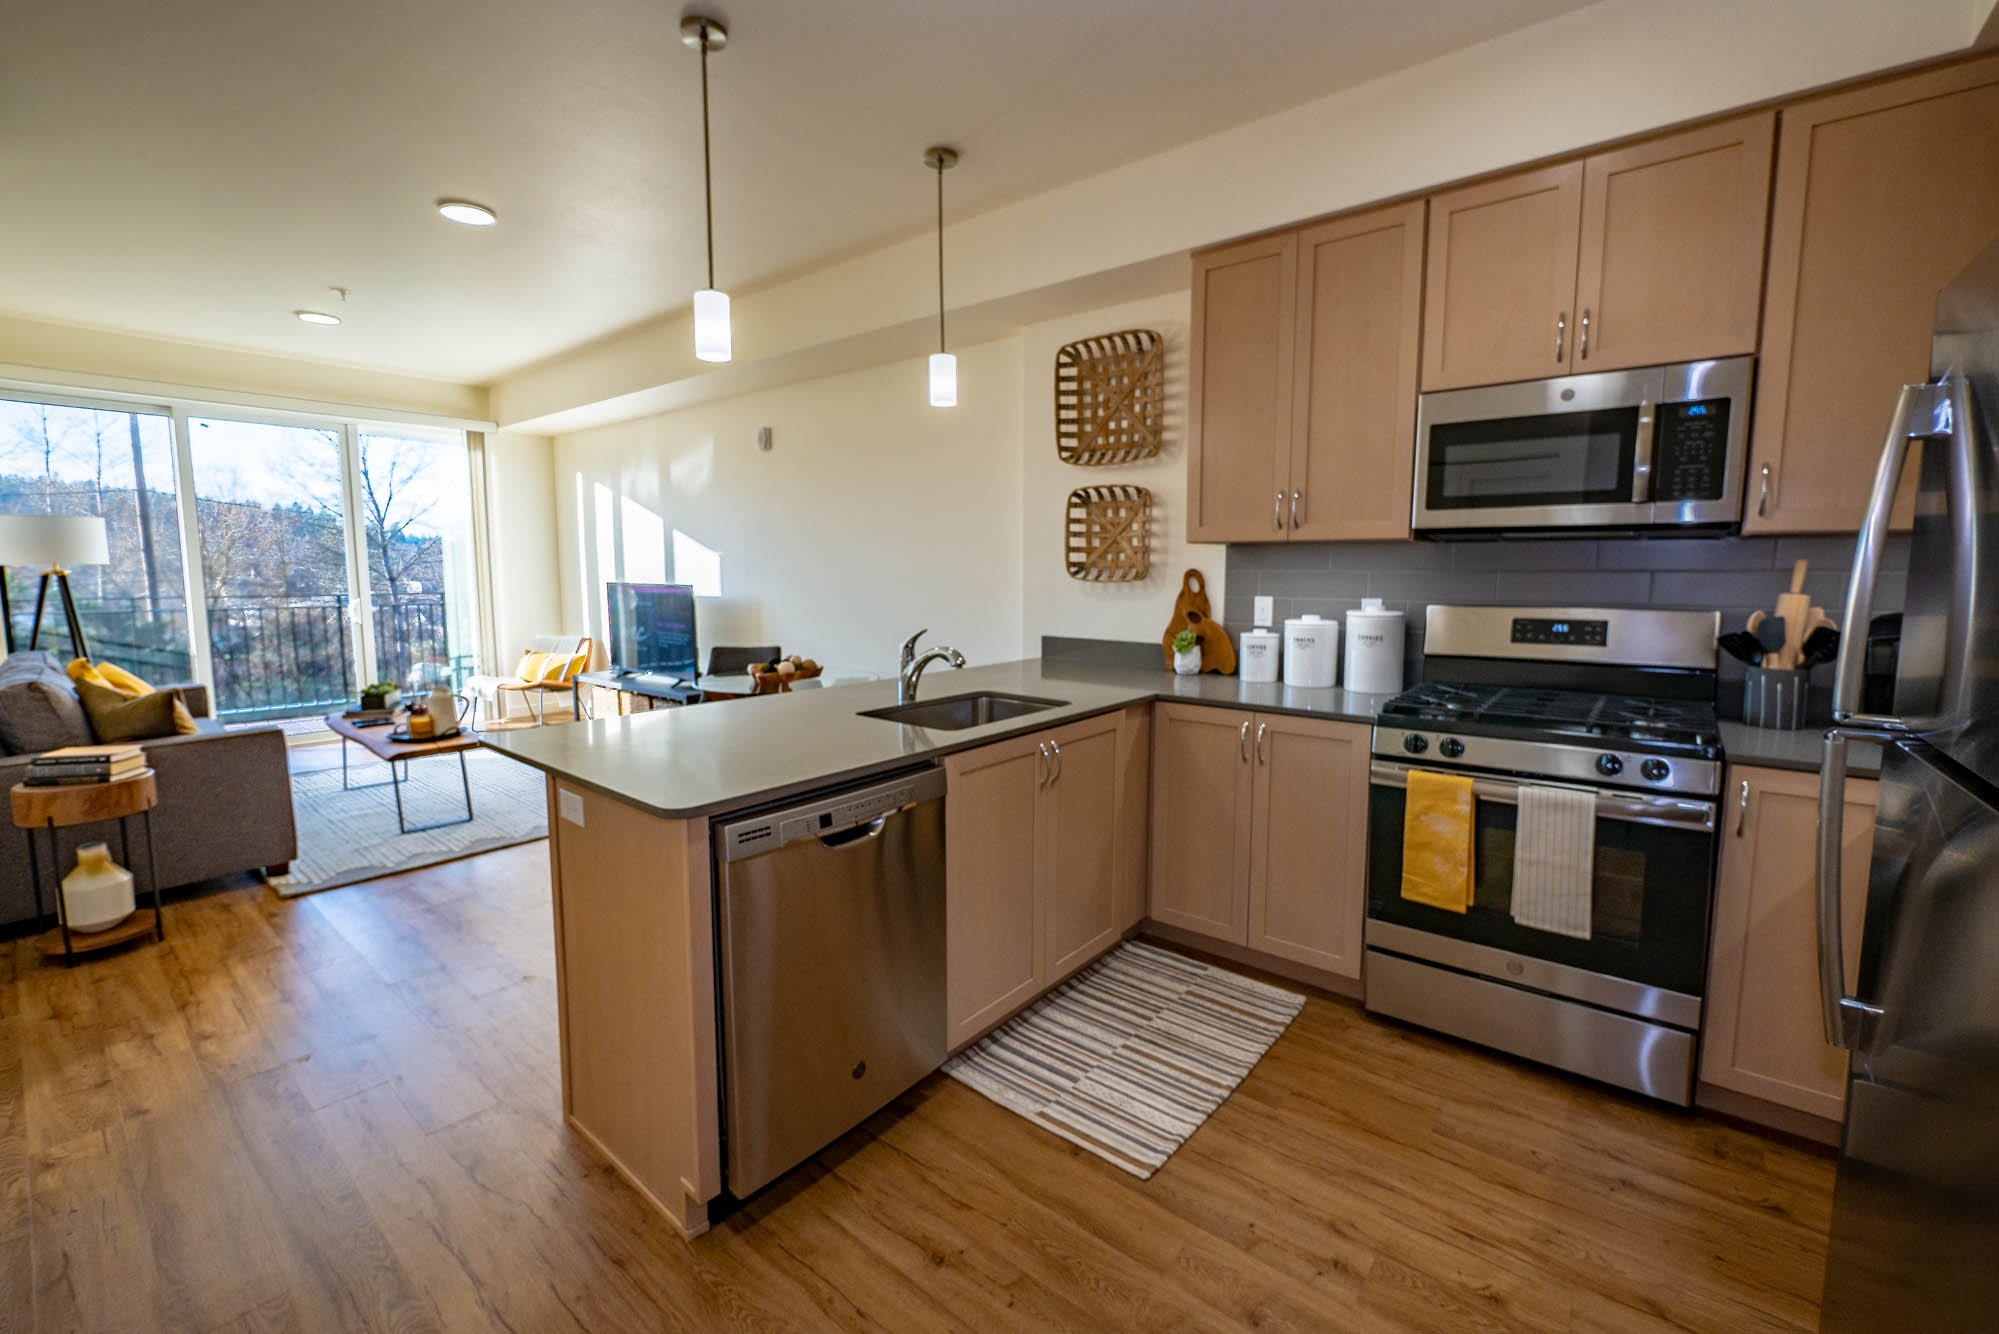 Apartments for Rent in Eugene - Amazon Apartments Kitchen